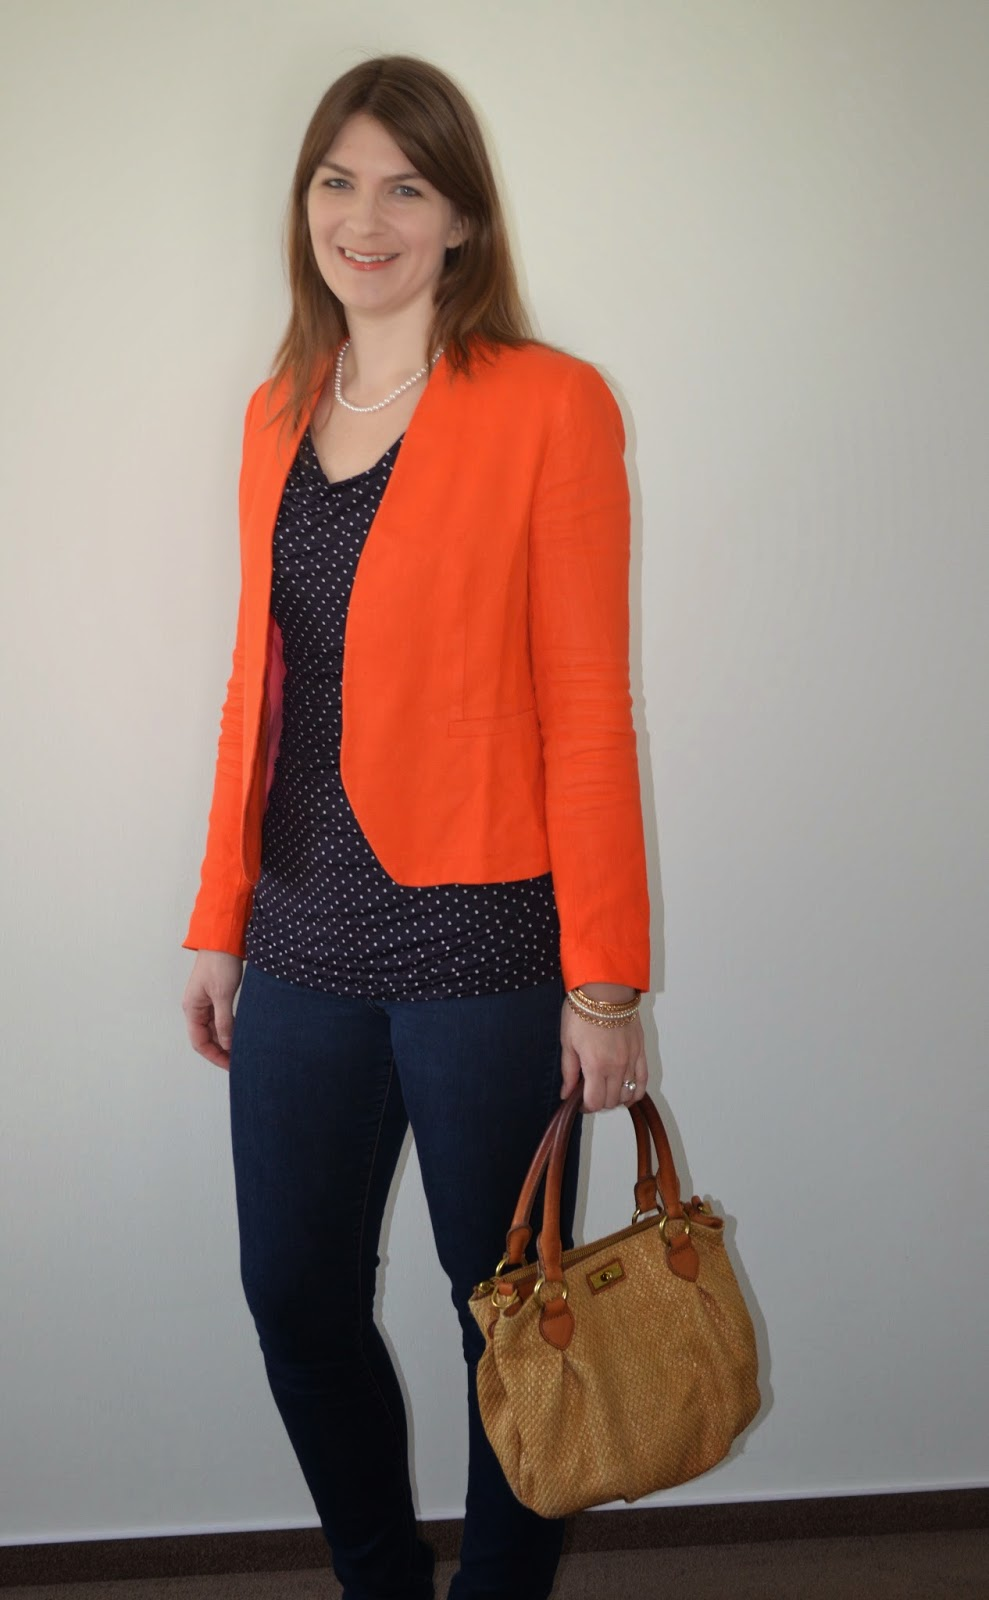 Review of Long Tall Sally Polka Dot Top, Tall Loft Blazer